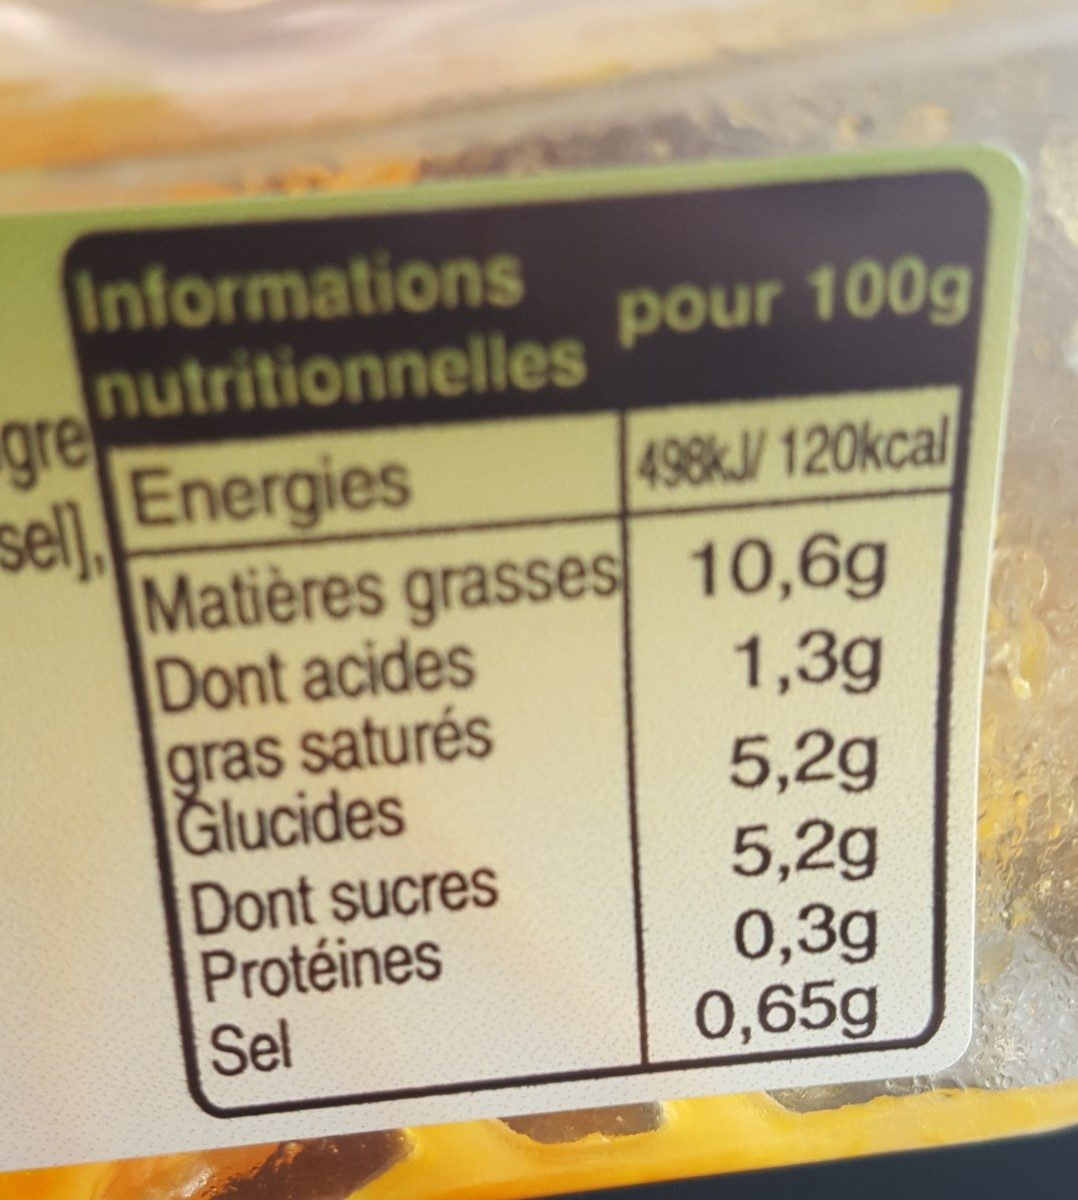 Carottes Râpée Au Jus De Citron - Ingredients